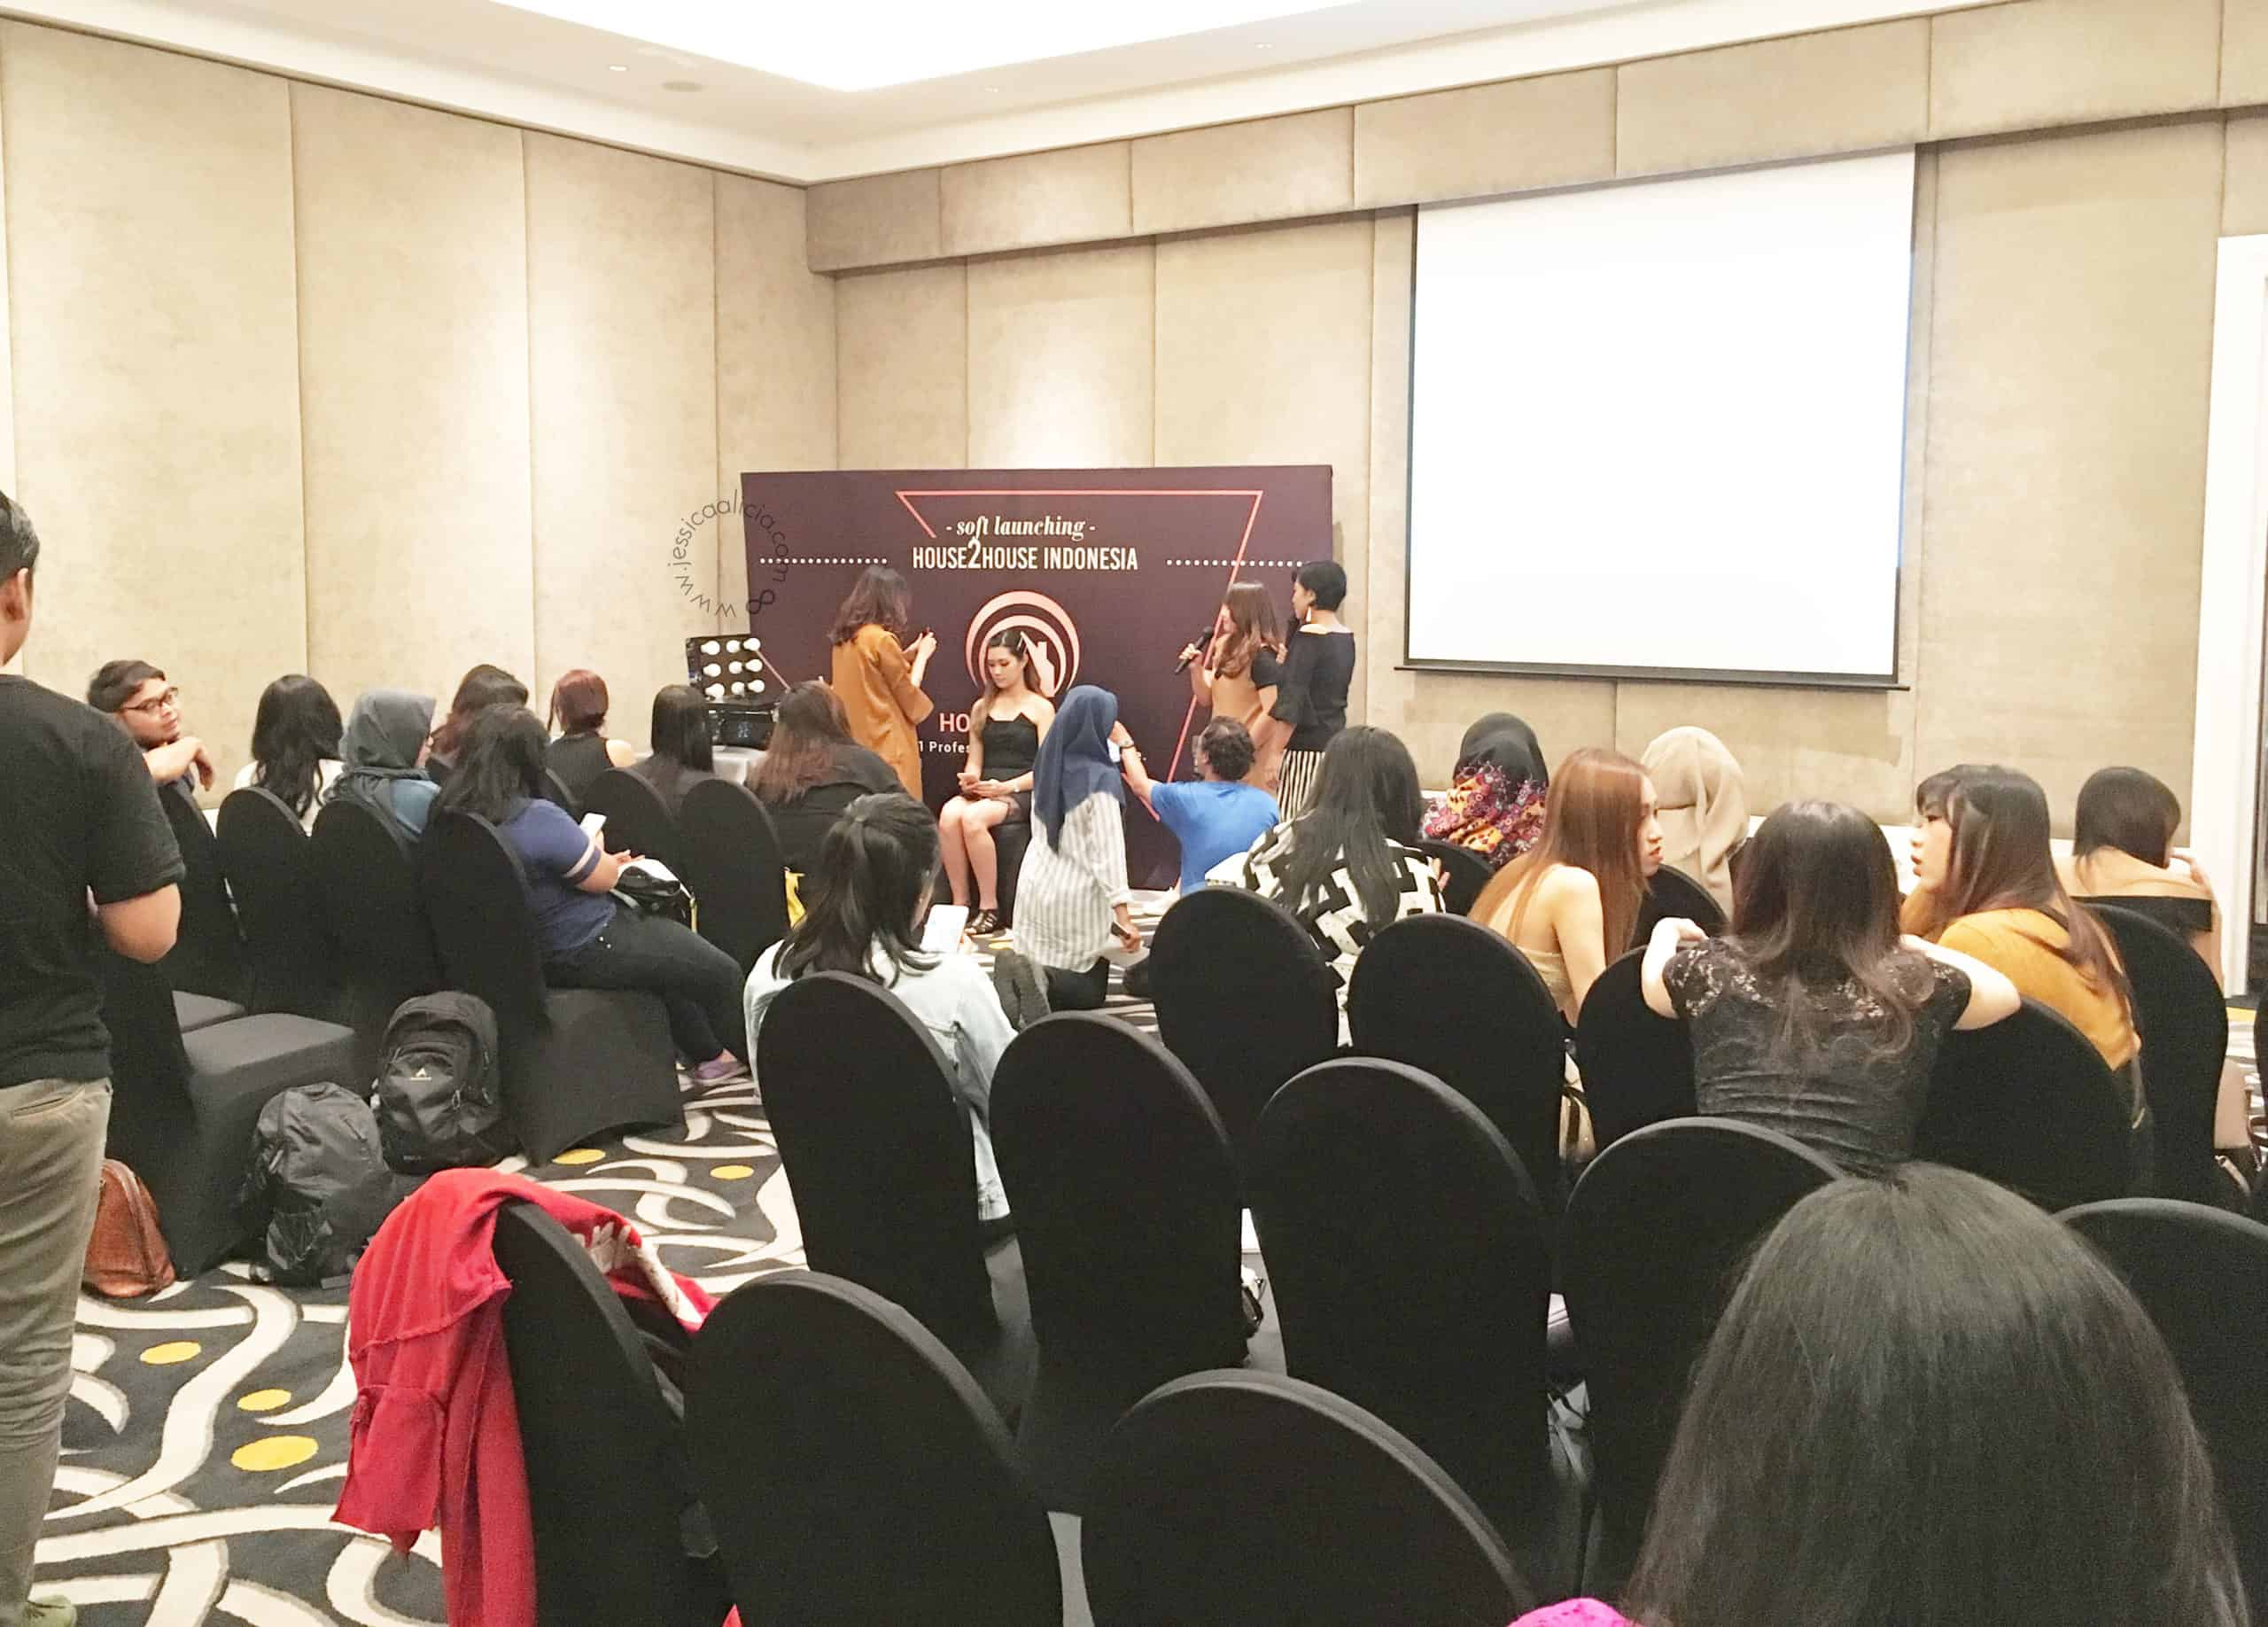 Event Report : Soft Launching of House2House Indonesia